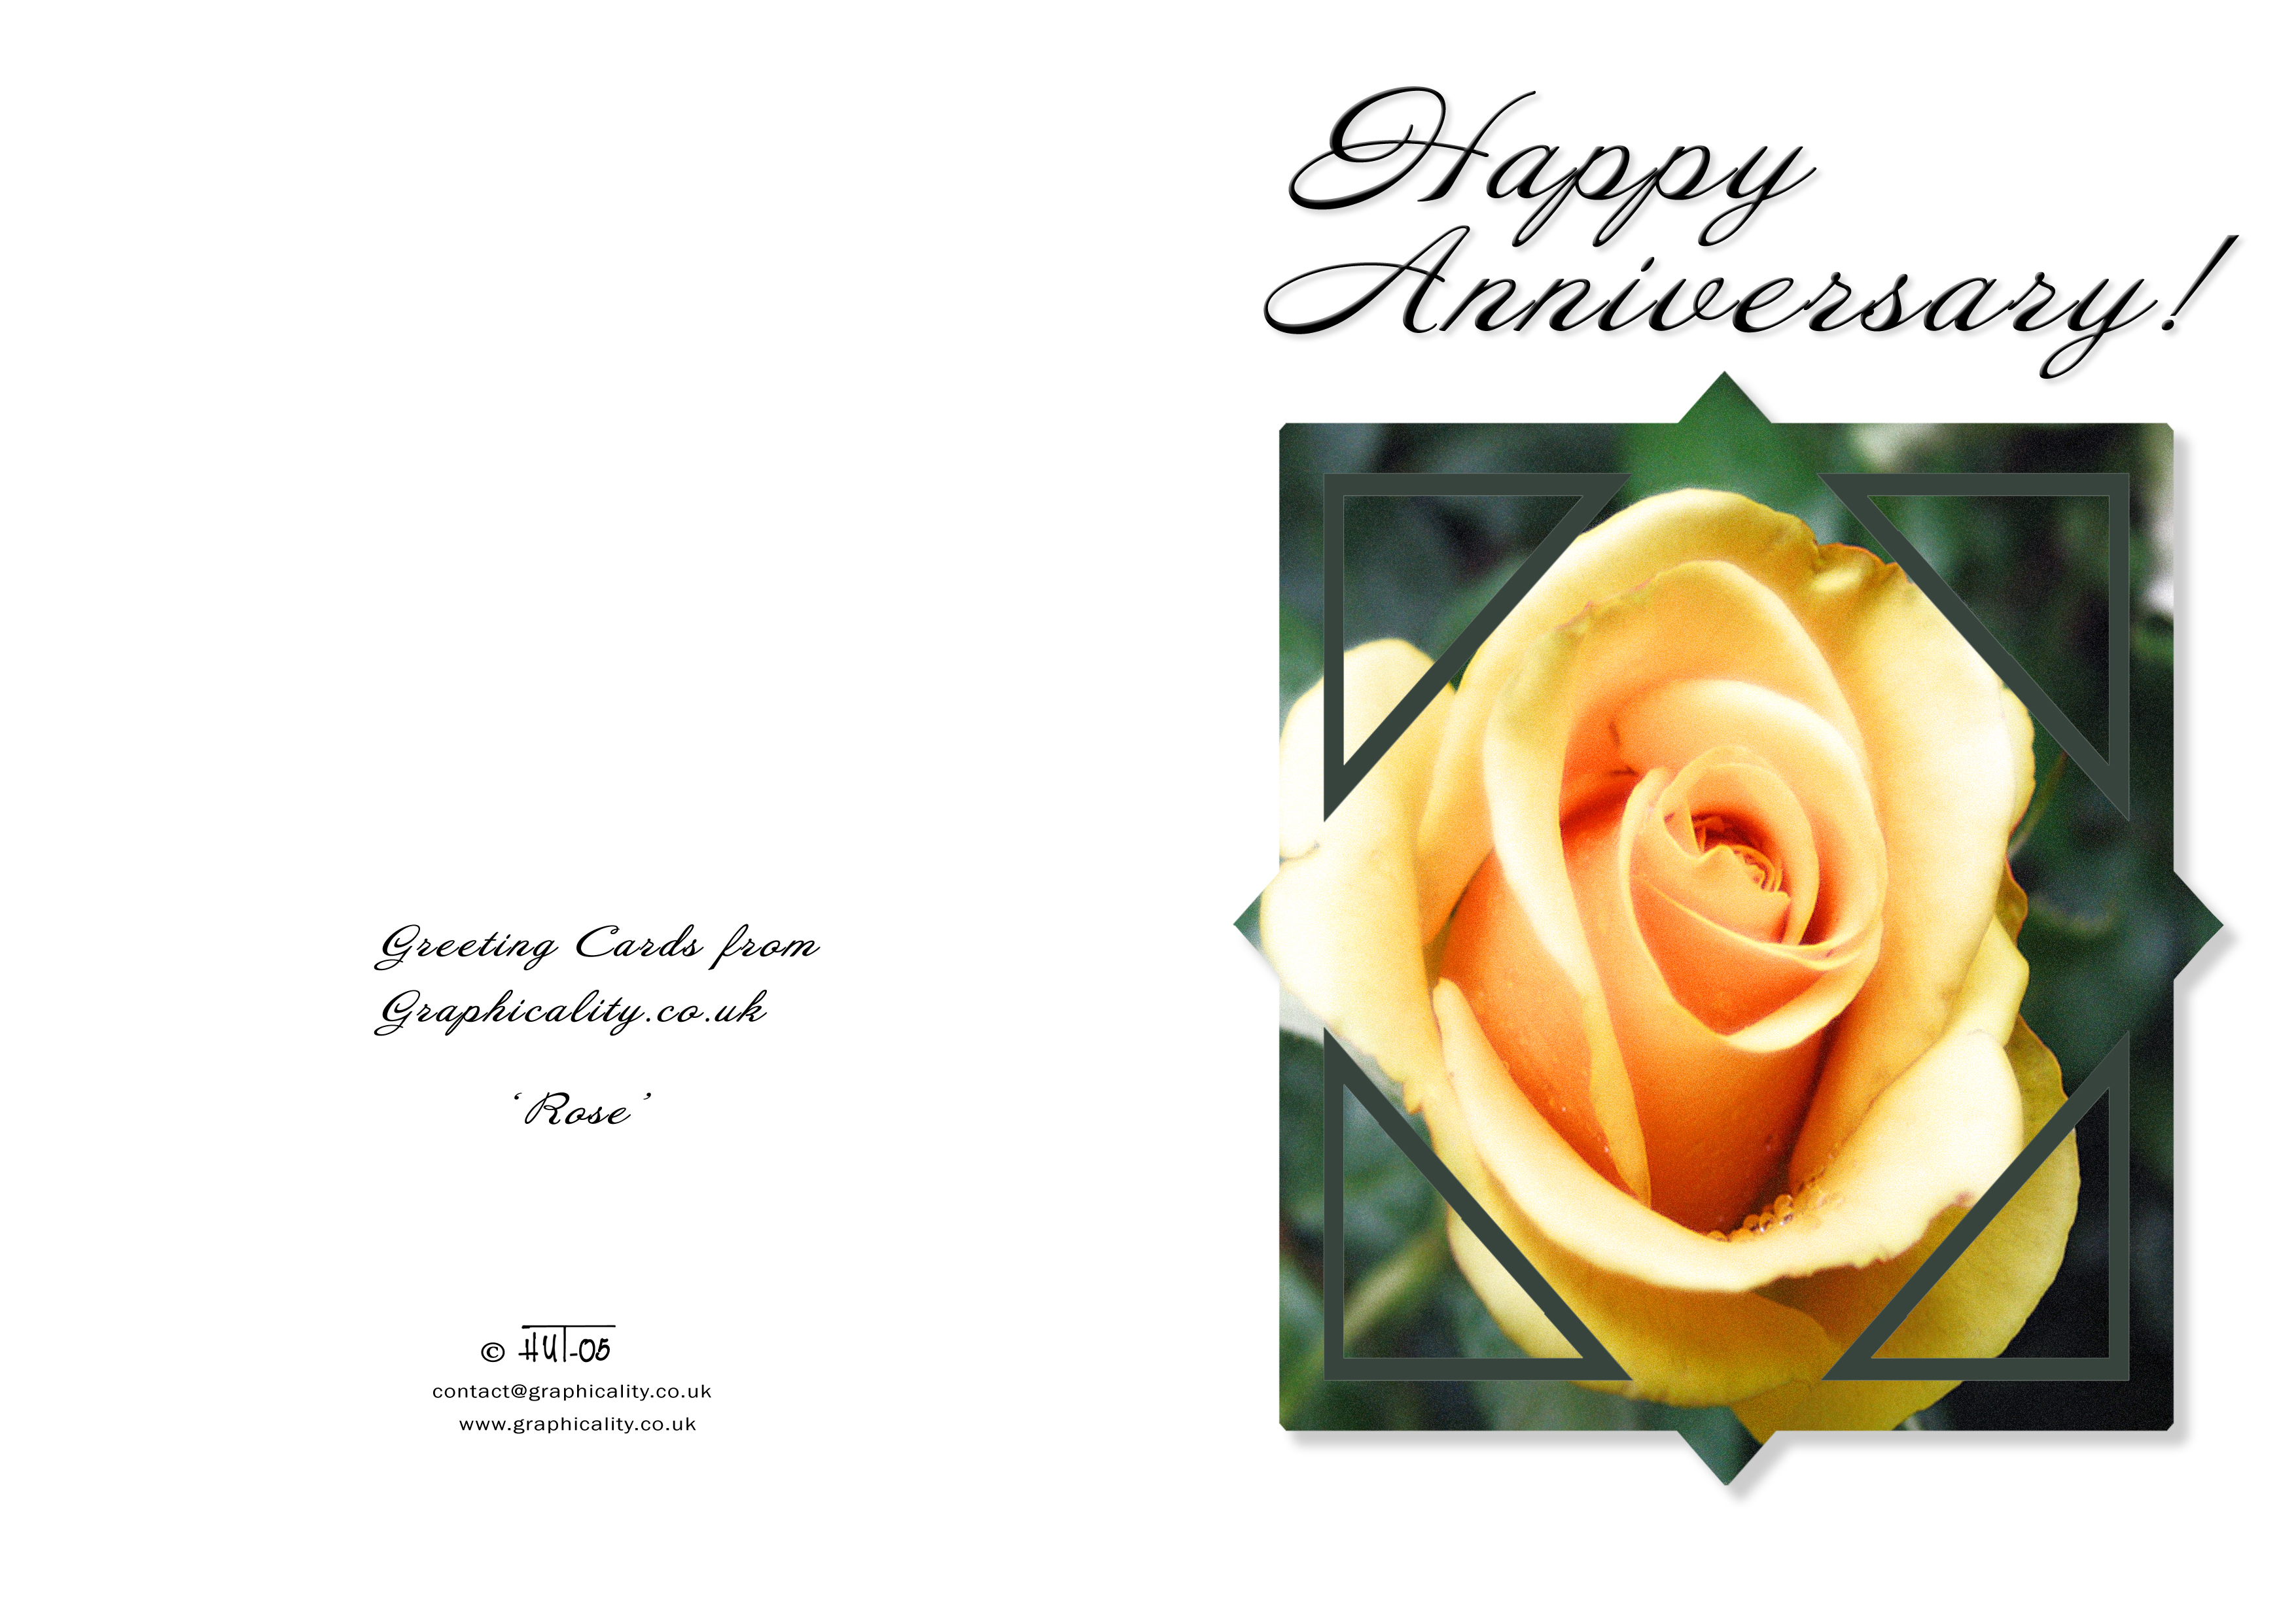 Free Wedding Anniversary Cards For Wife Wedding Invitation Sample – Print Free Anniversary Cards